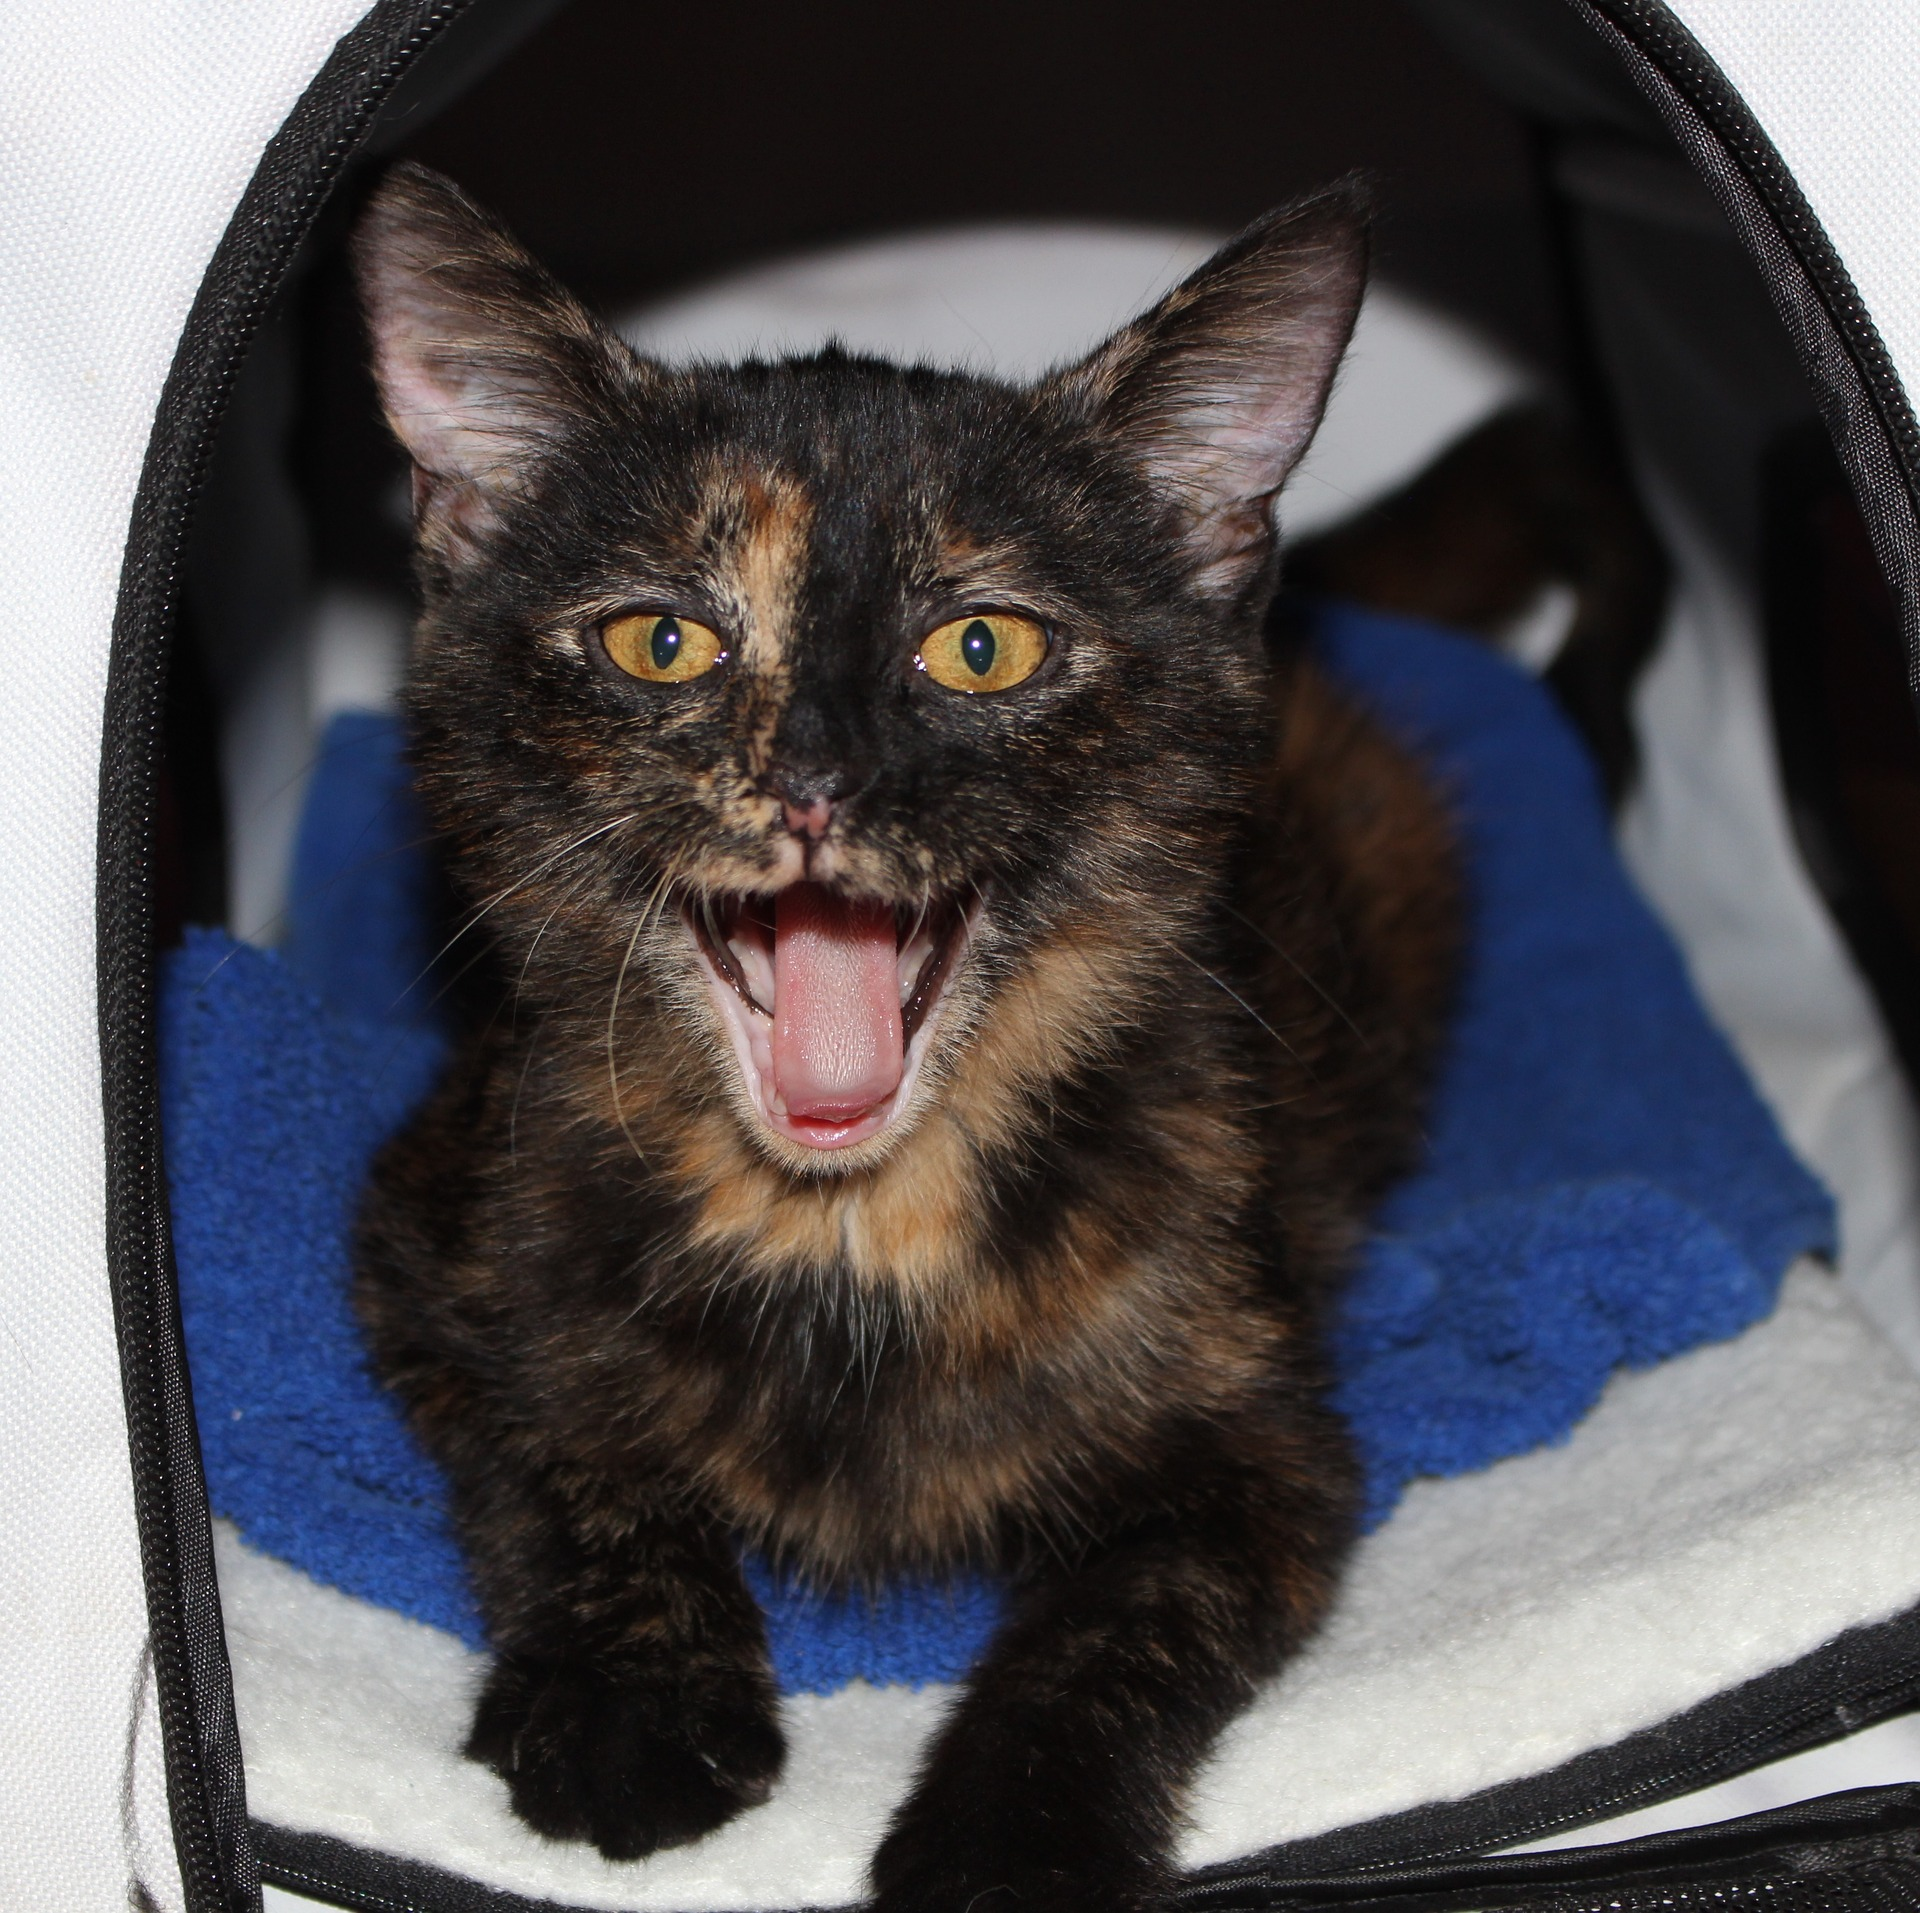 Cat Panting – Is it Normal for Cats to Pant?